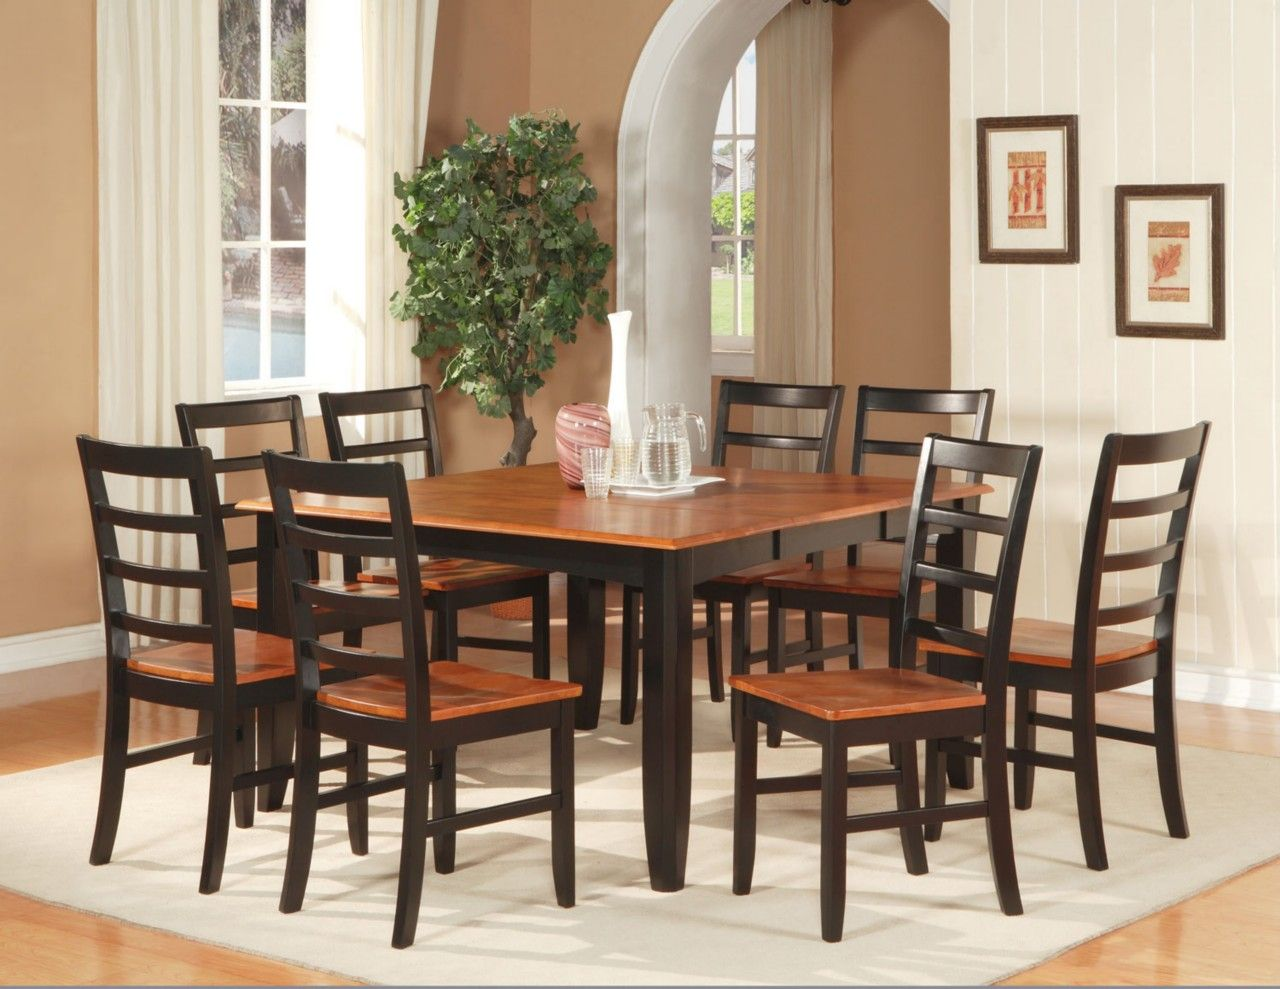 7 pc square dinette dining room set table with 6 wood seat chairs black cherry